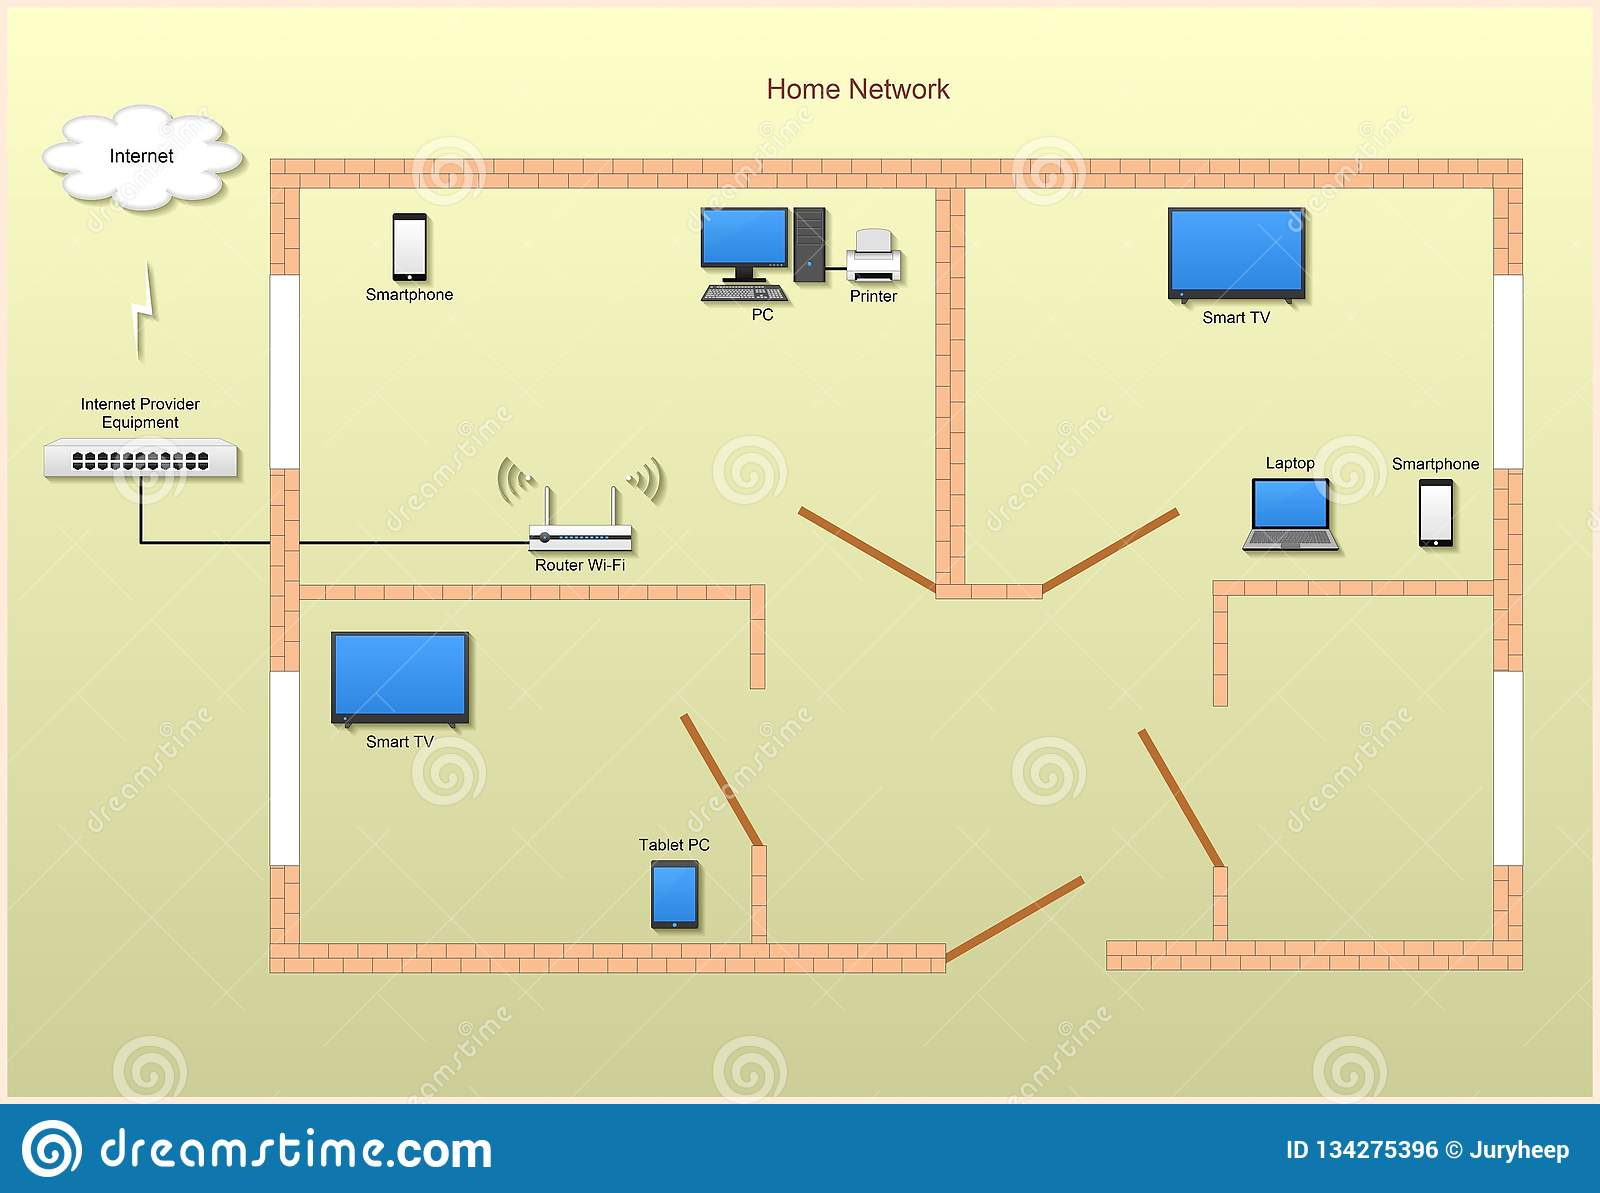 Cool Home Network Diagram With Devices Buildings On Gold Background Wiring Cloud Hisonuggs Outletorg